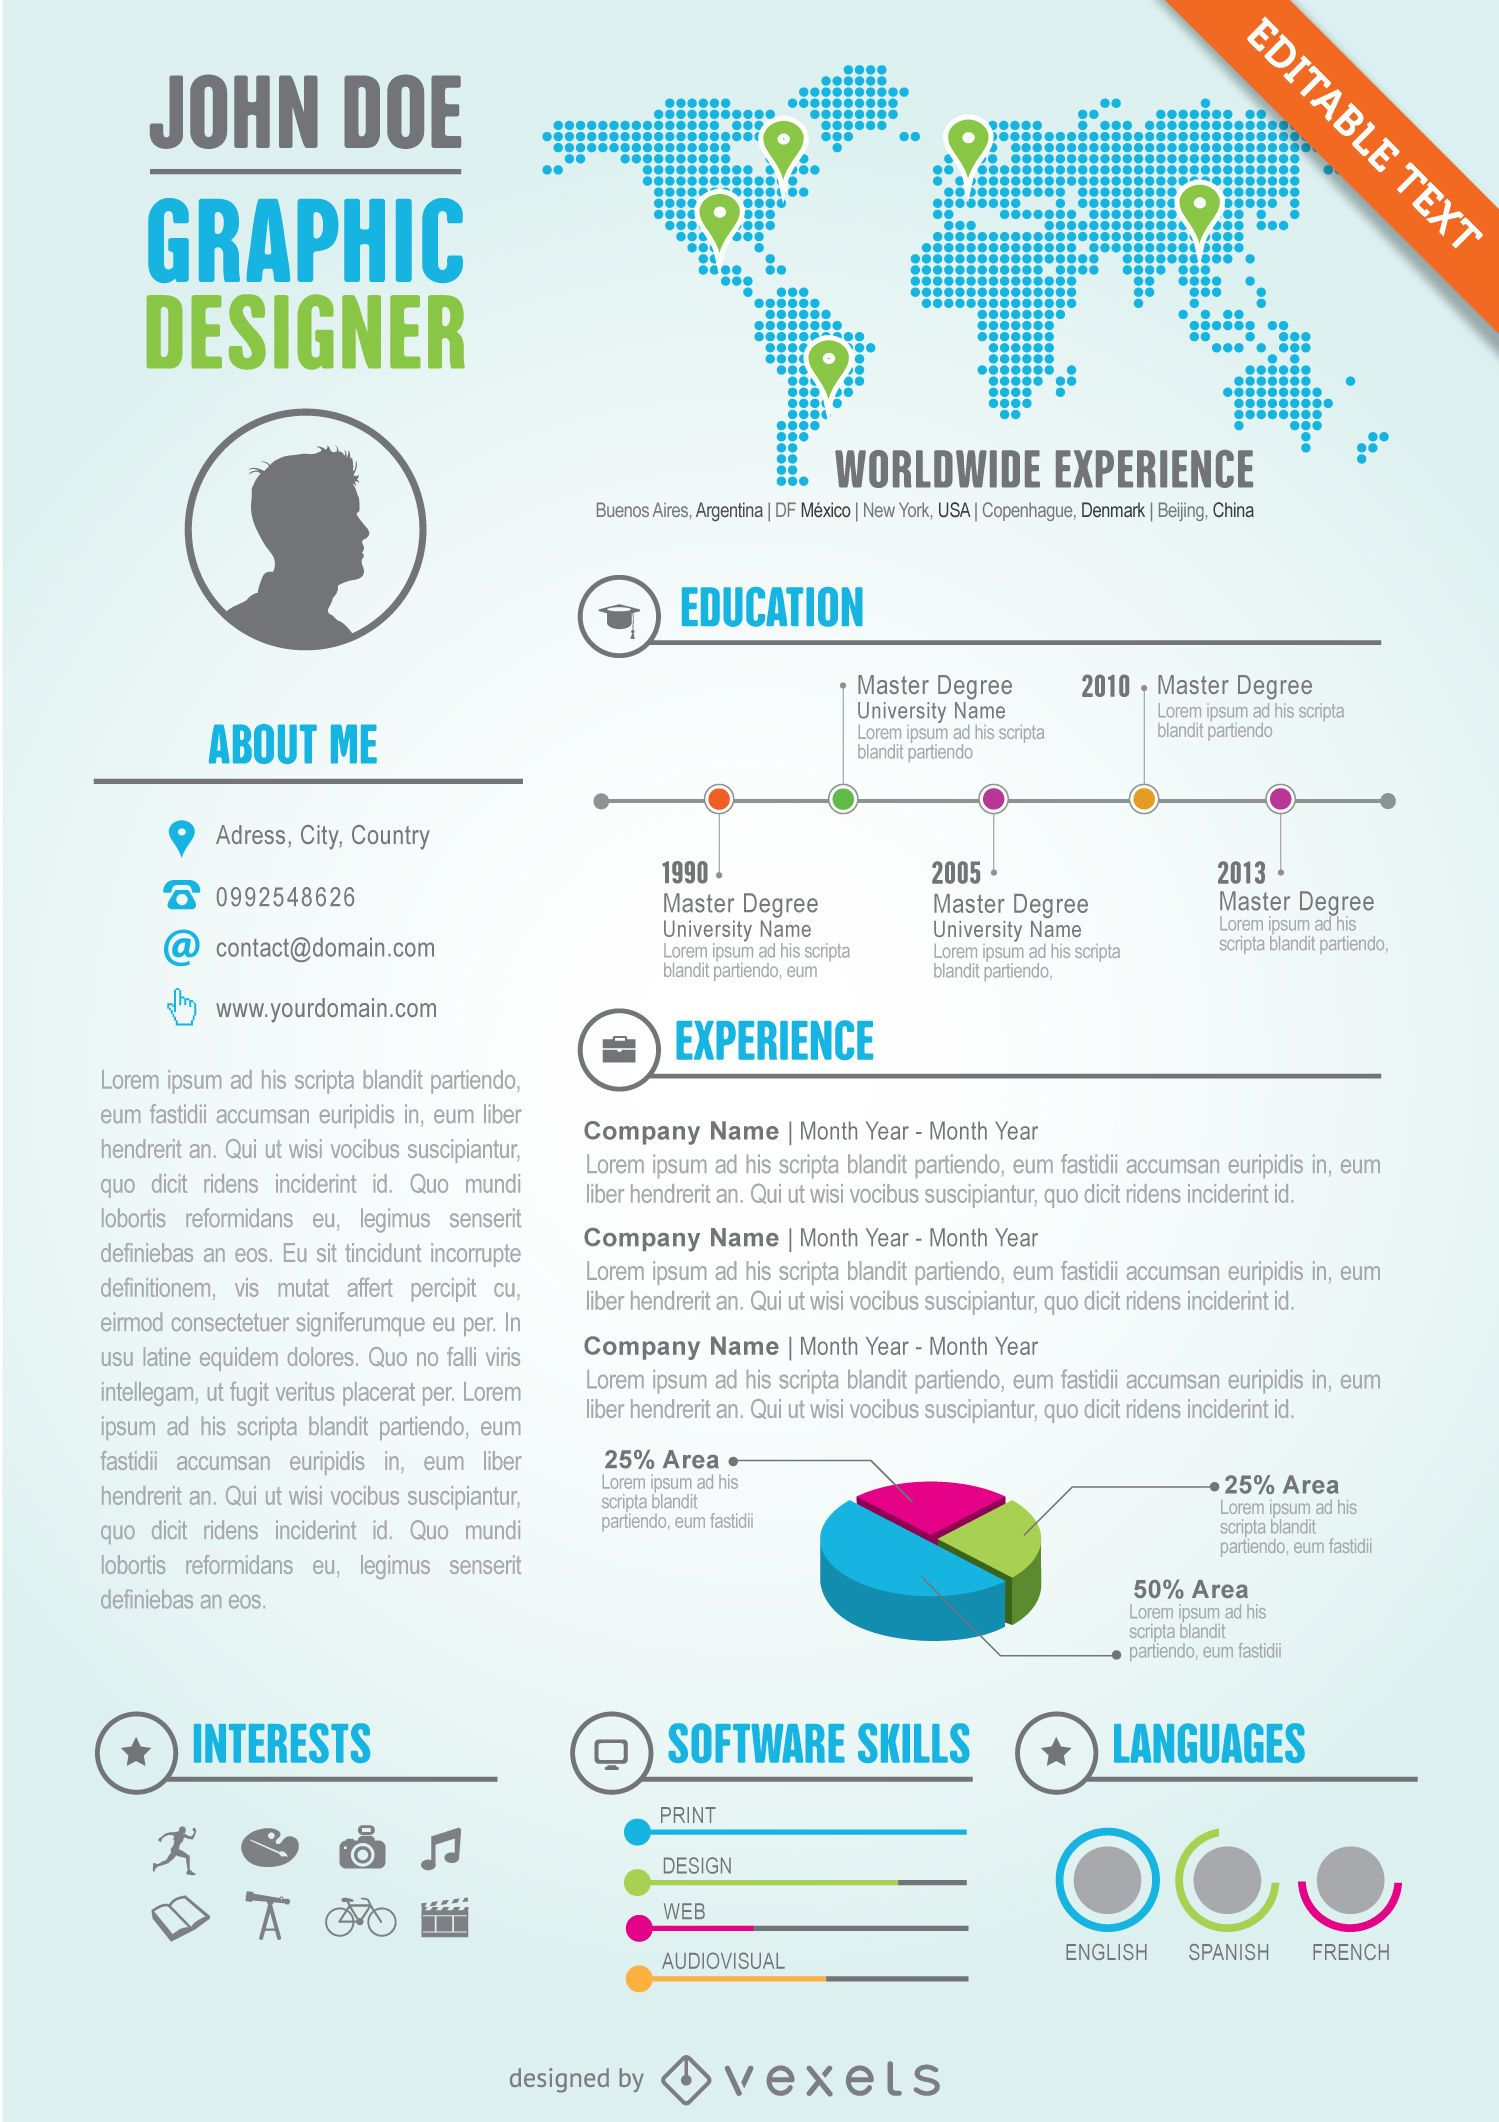 Cv Mockup Maker Design Editable Design